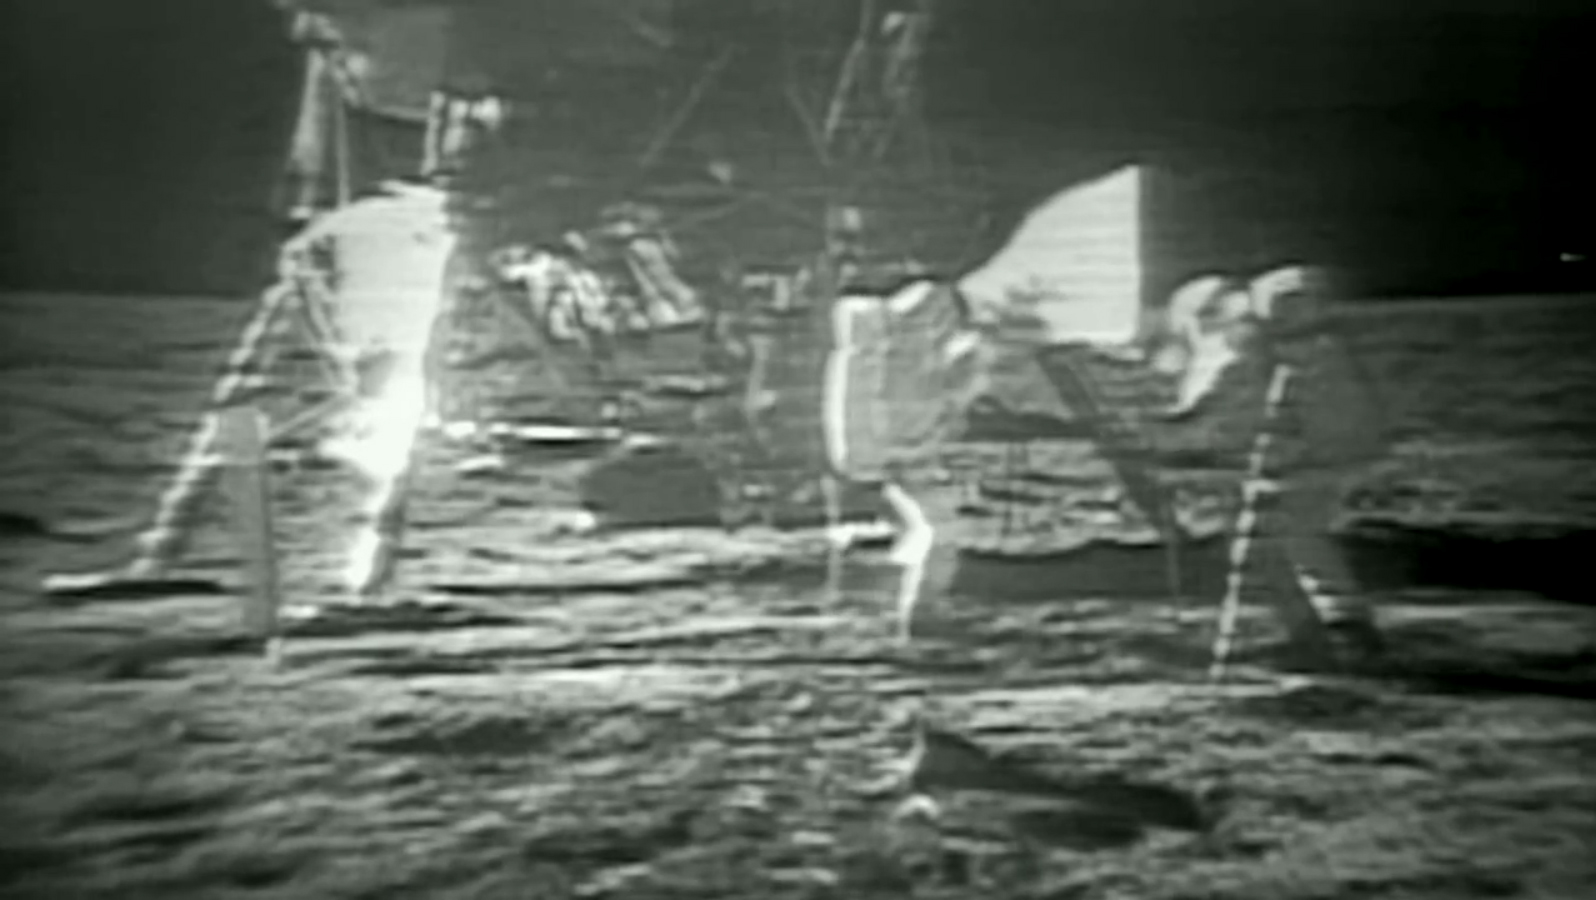 apollo 11 moon landing youtube - photo #25